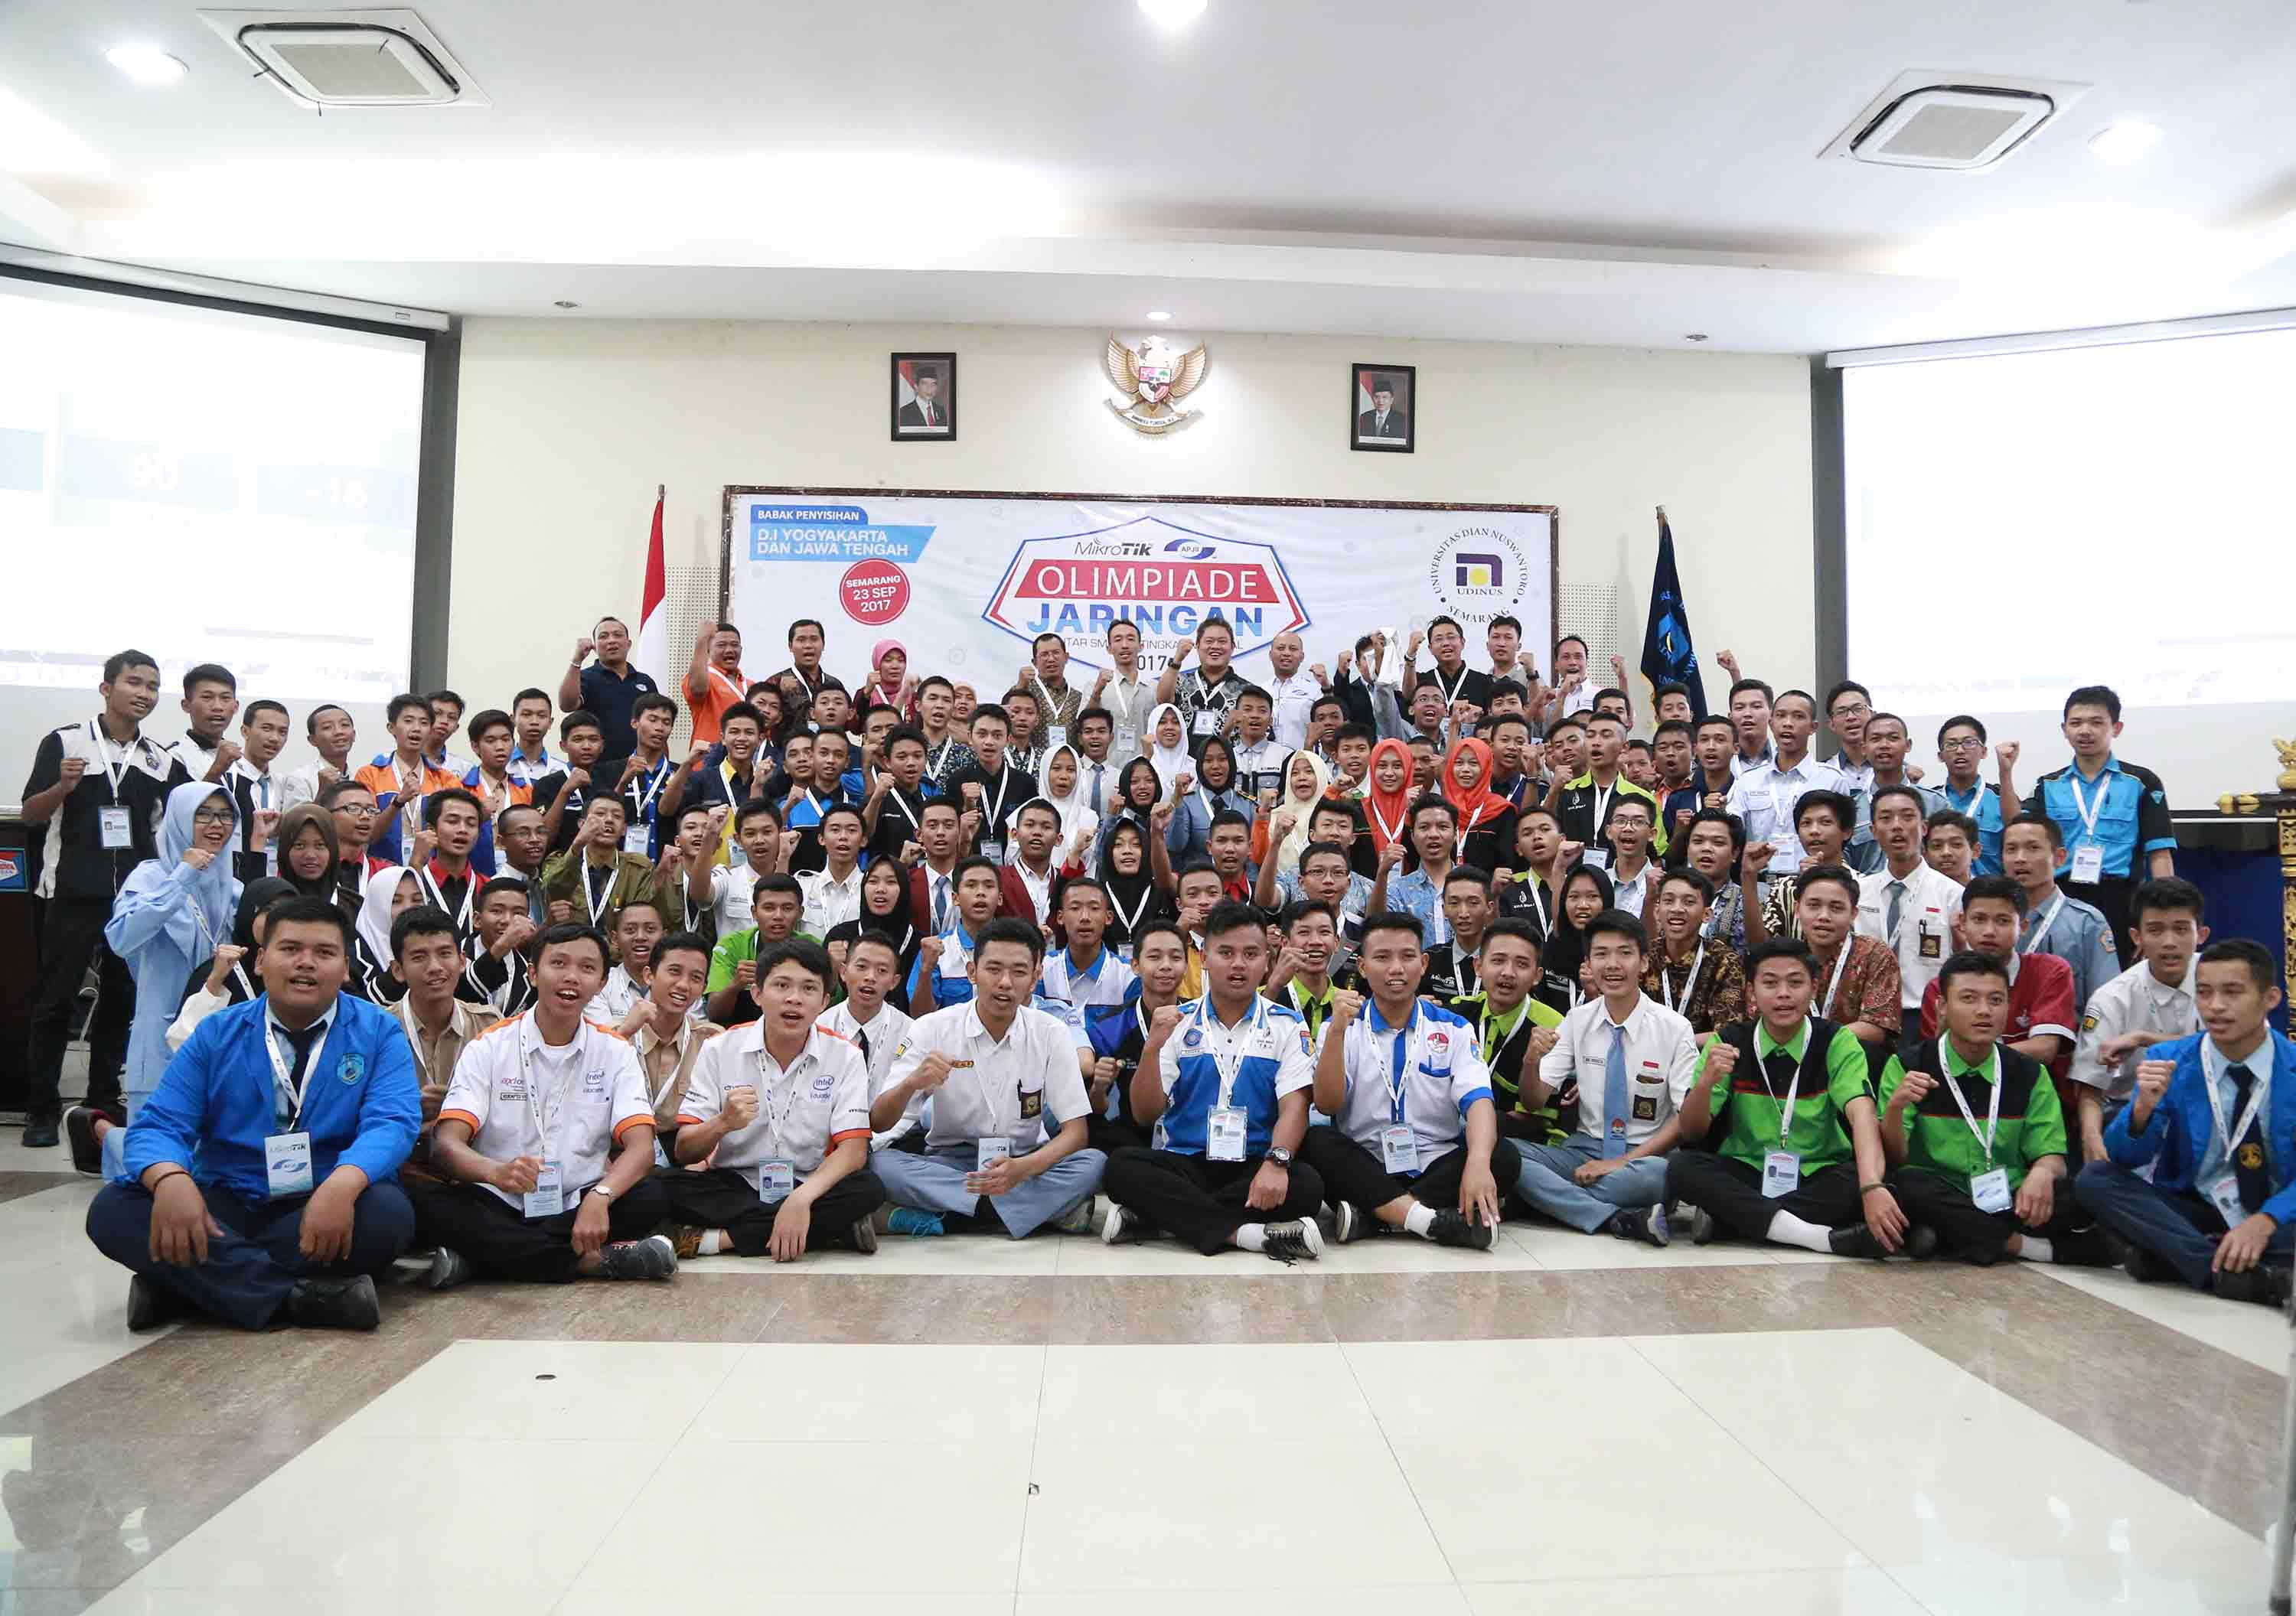 THE PRELIMINARY ROUND OF NETWORKING CHAMPIONSHIP OF CENTRAL JAVA AND YOGYAKARTA AT UDINUS